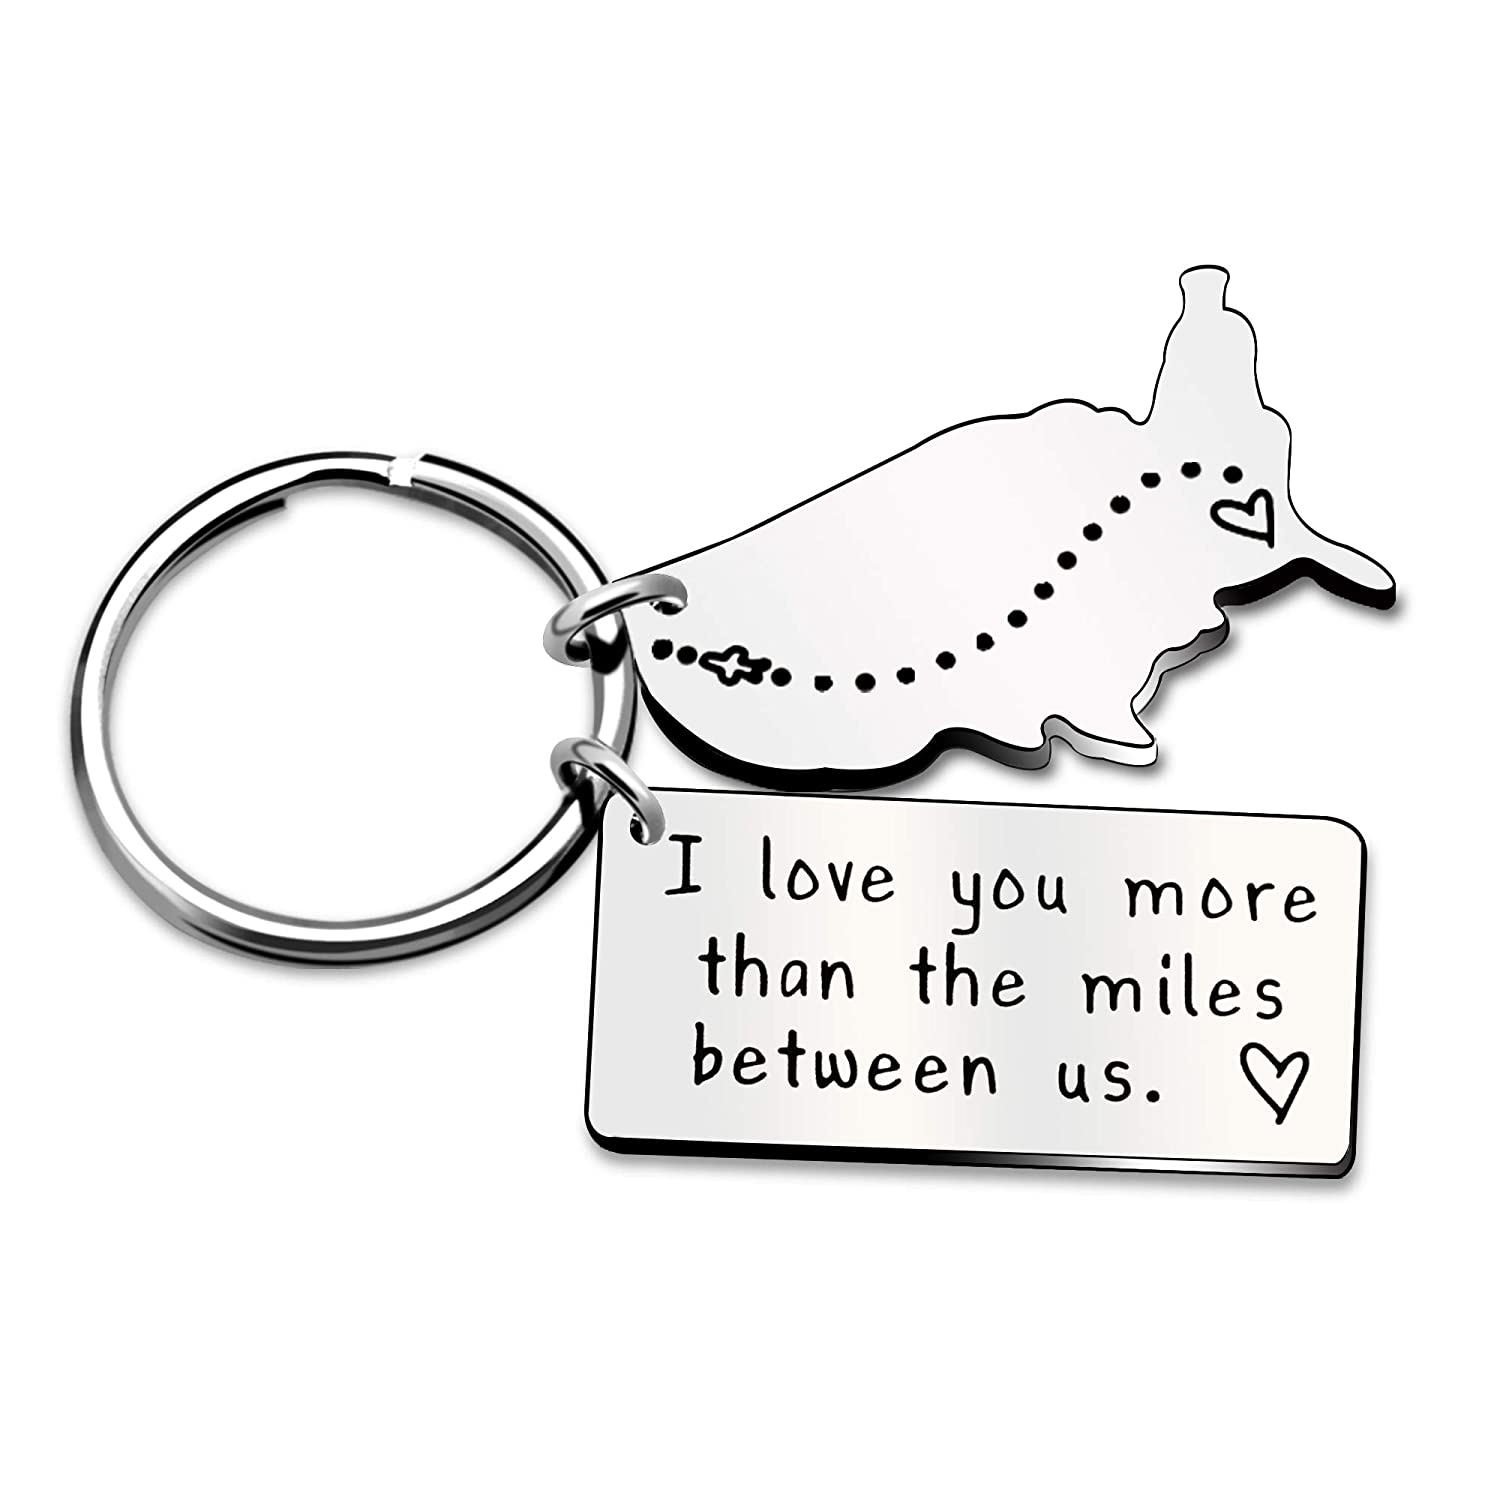 Key Chain Ring Best Friend Valentine Long Distance Relationship Gift - I Love You More Than The Miles Between Us AGR8T